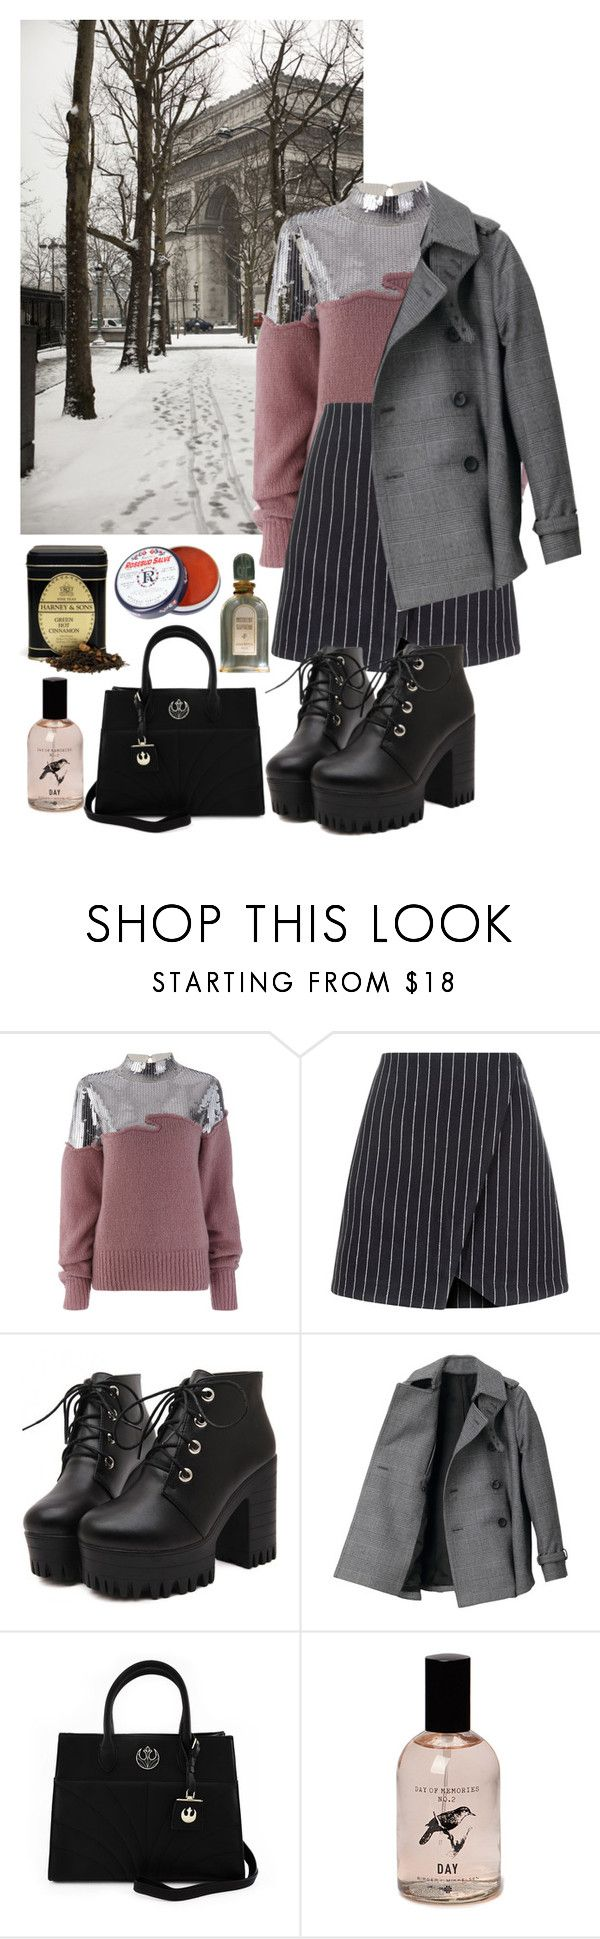 Untitled #440 by danielagreg on Polyvore featuring Aviù, THE RERACS, New Look, Loungefly, Jean Patou and Rosebud Perfume Co.